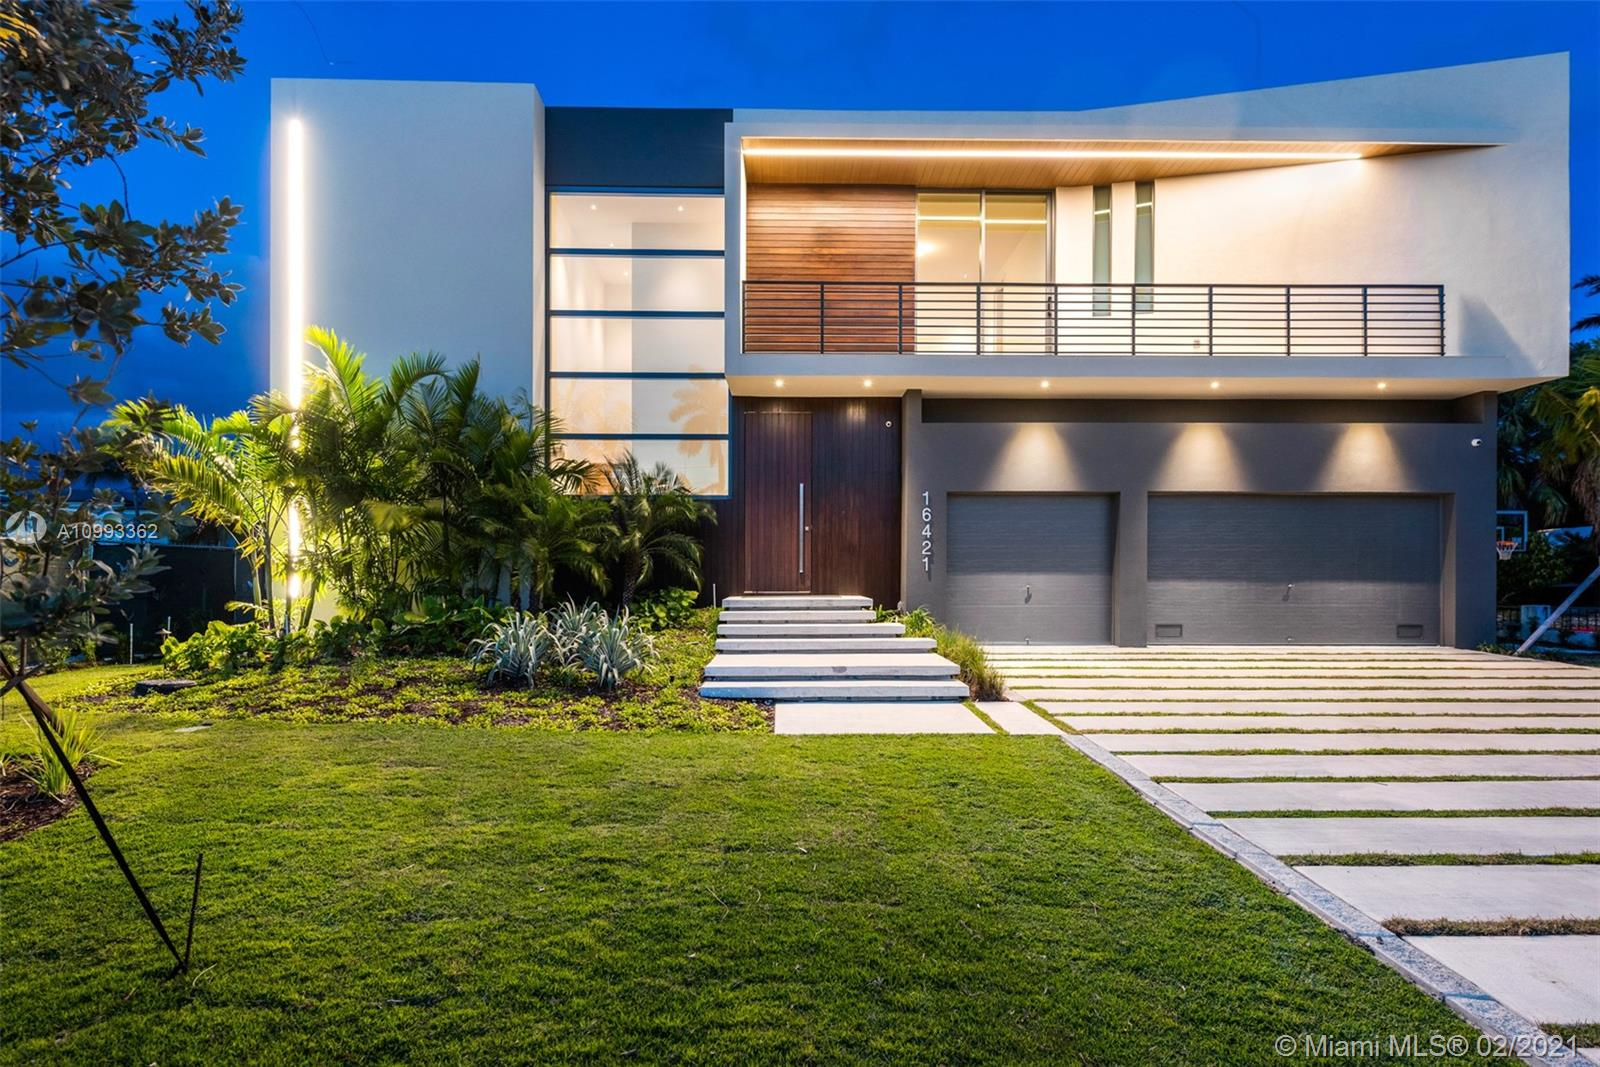 Home - South Florida's #1 Source for Luxury Homes | Miami Luxury Homes